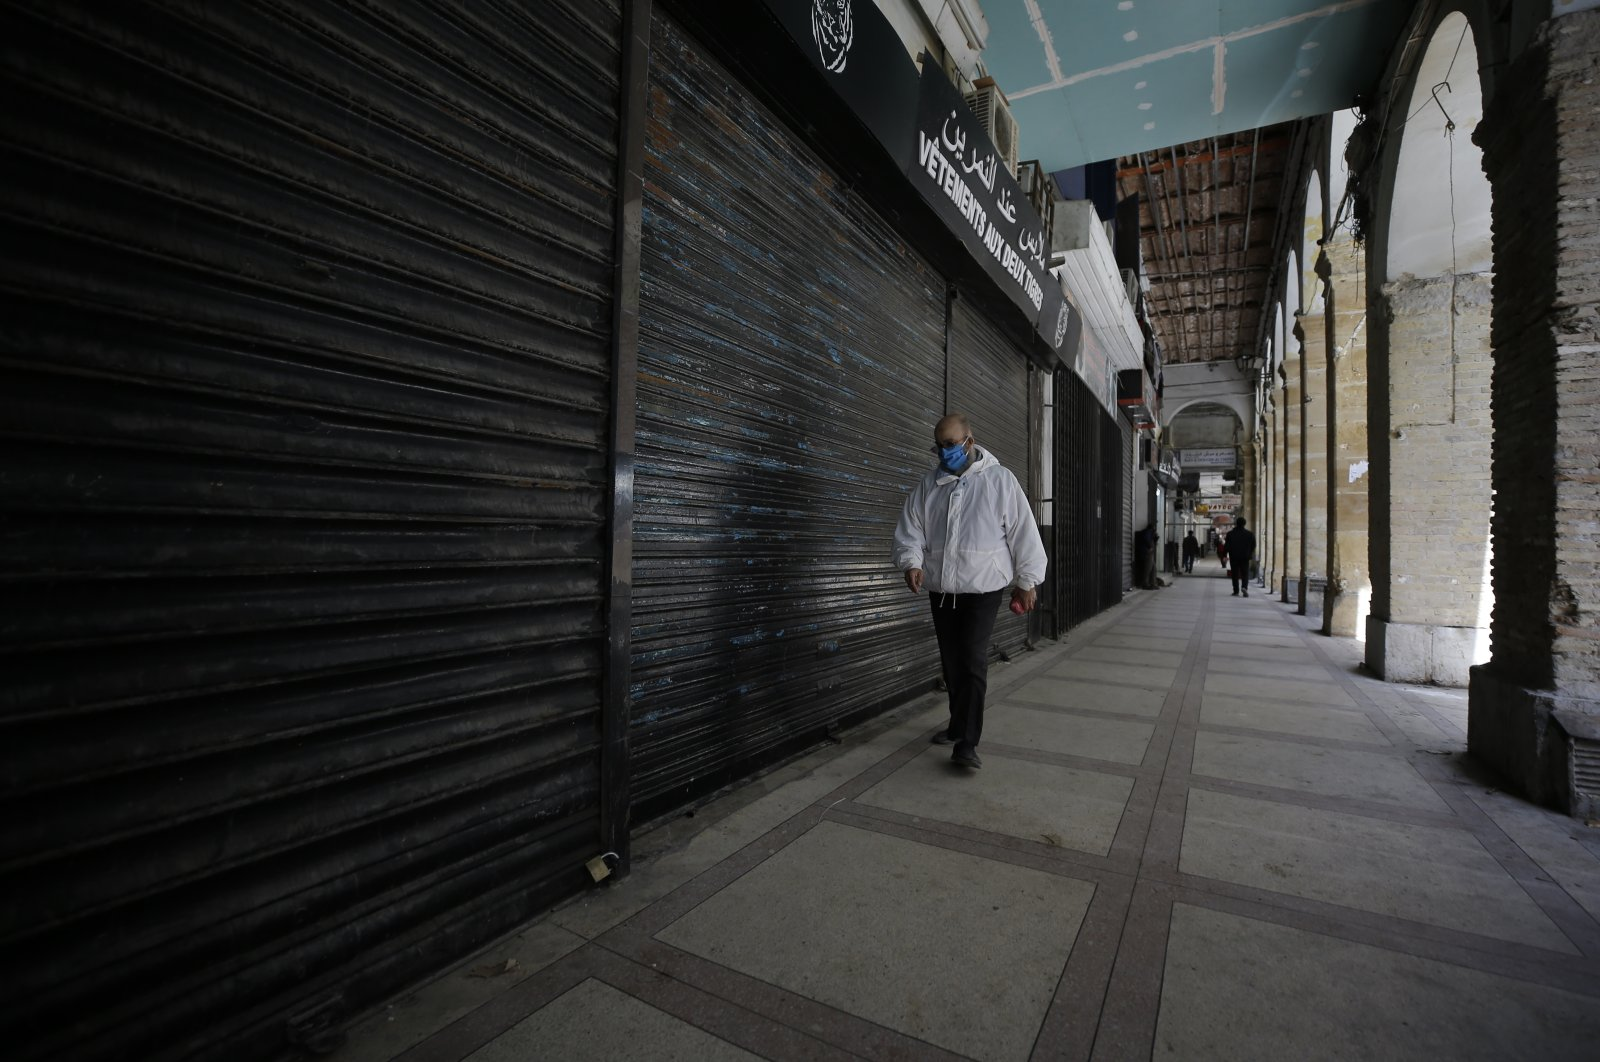 A man walks by closed shops in Algiers, Wednesday, April 29, 2020. (AP Photo)